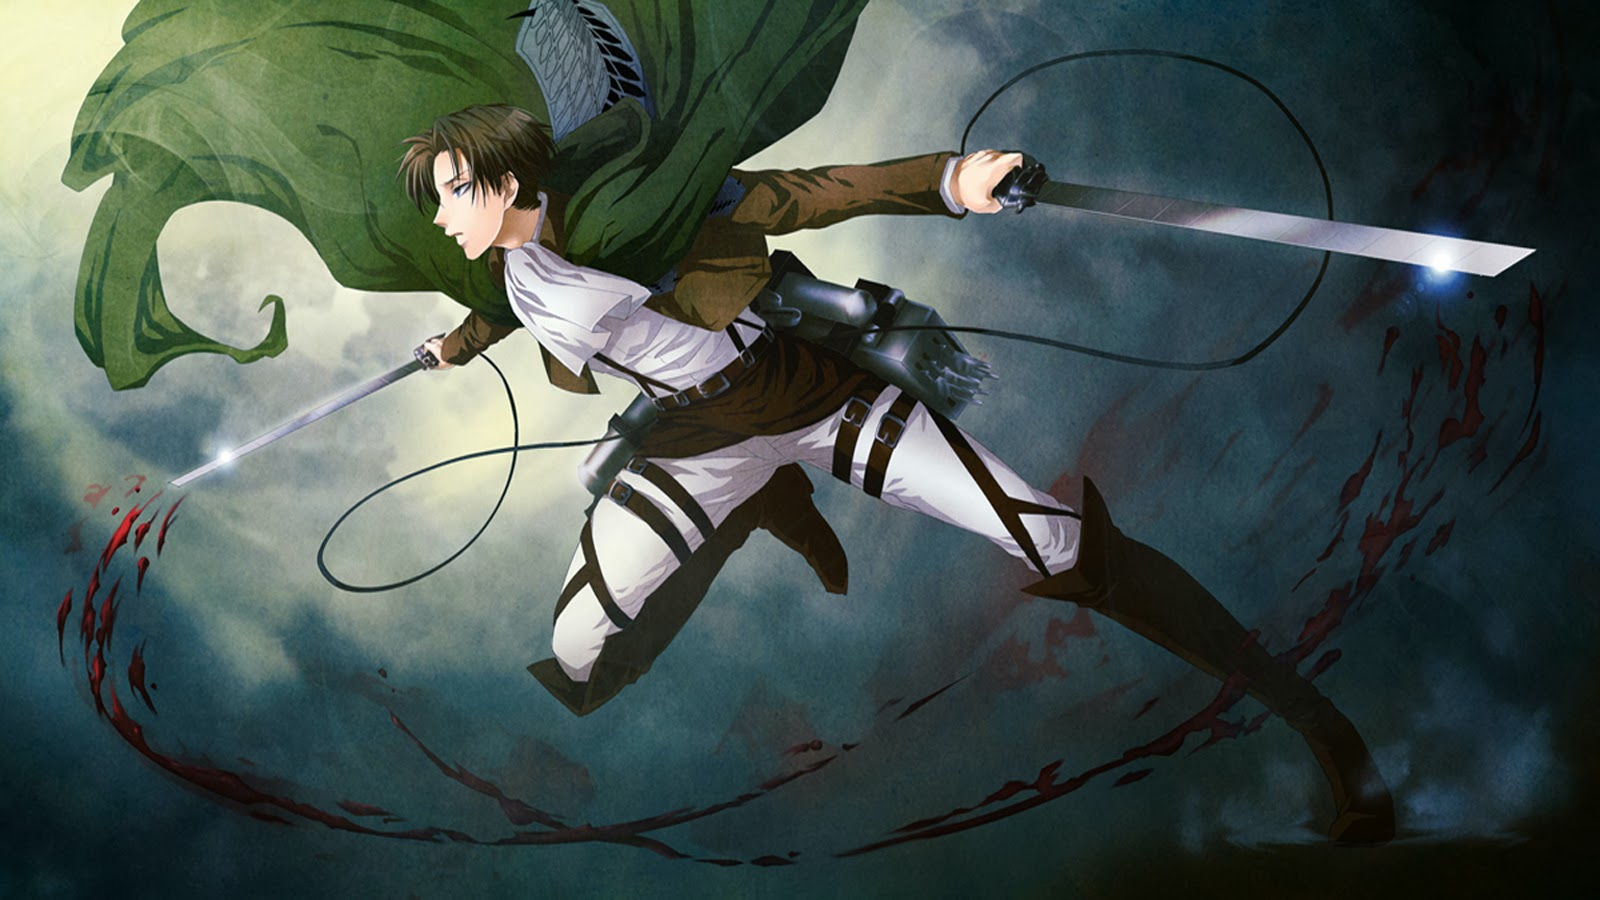 Attack Levi Attack Wallpaper Levis Levi Ackerman Shingeki Anime 1600x900